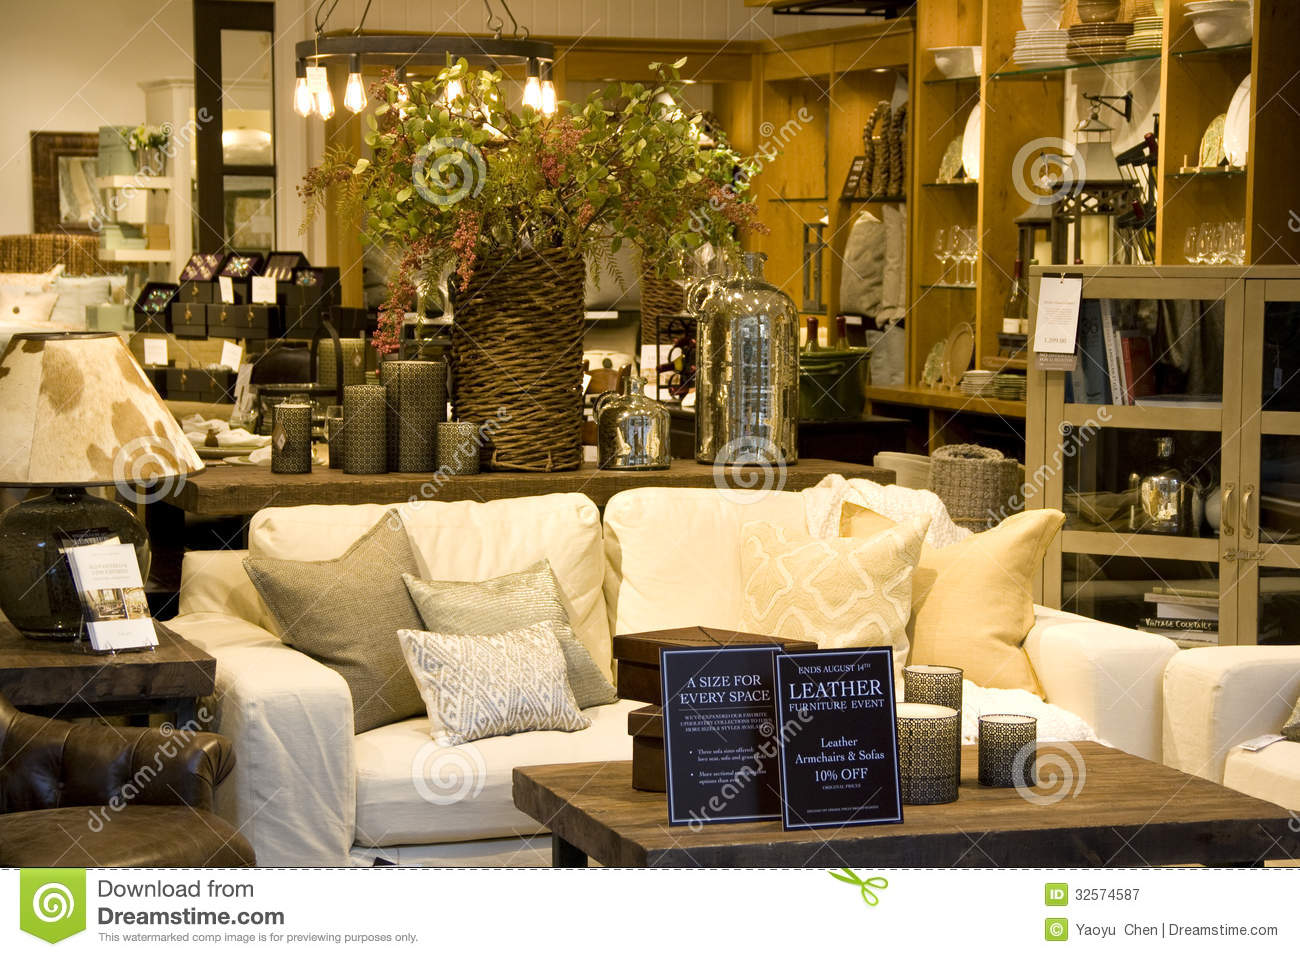 A Store Selling Nice Home Decor And Furniture At Bellevue Square Mall Washington USA